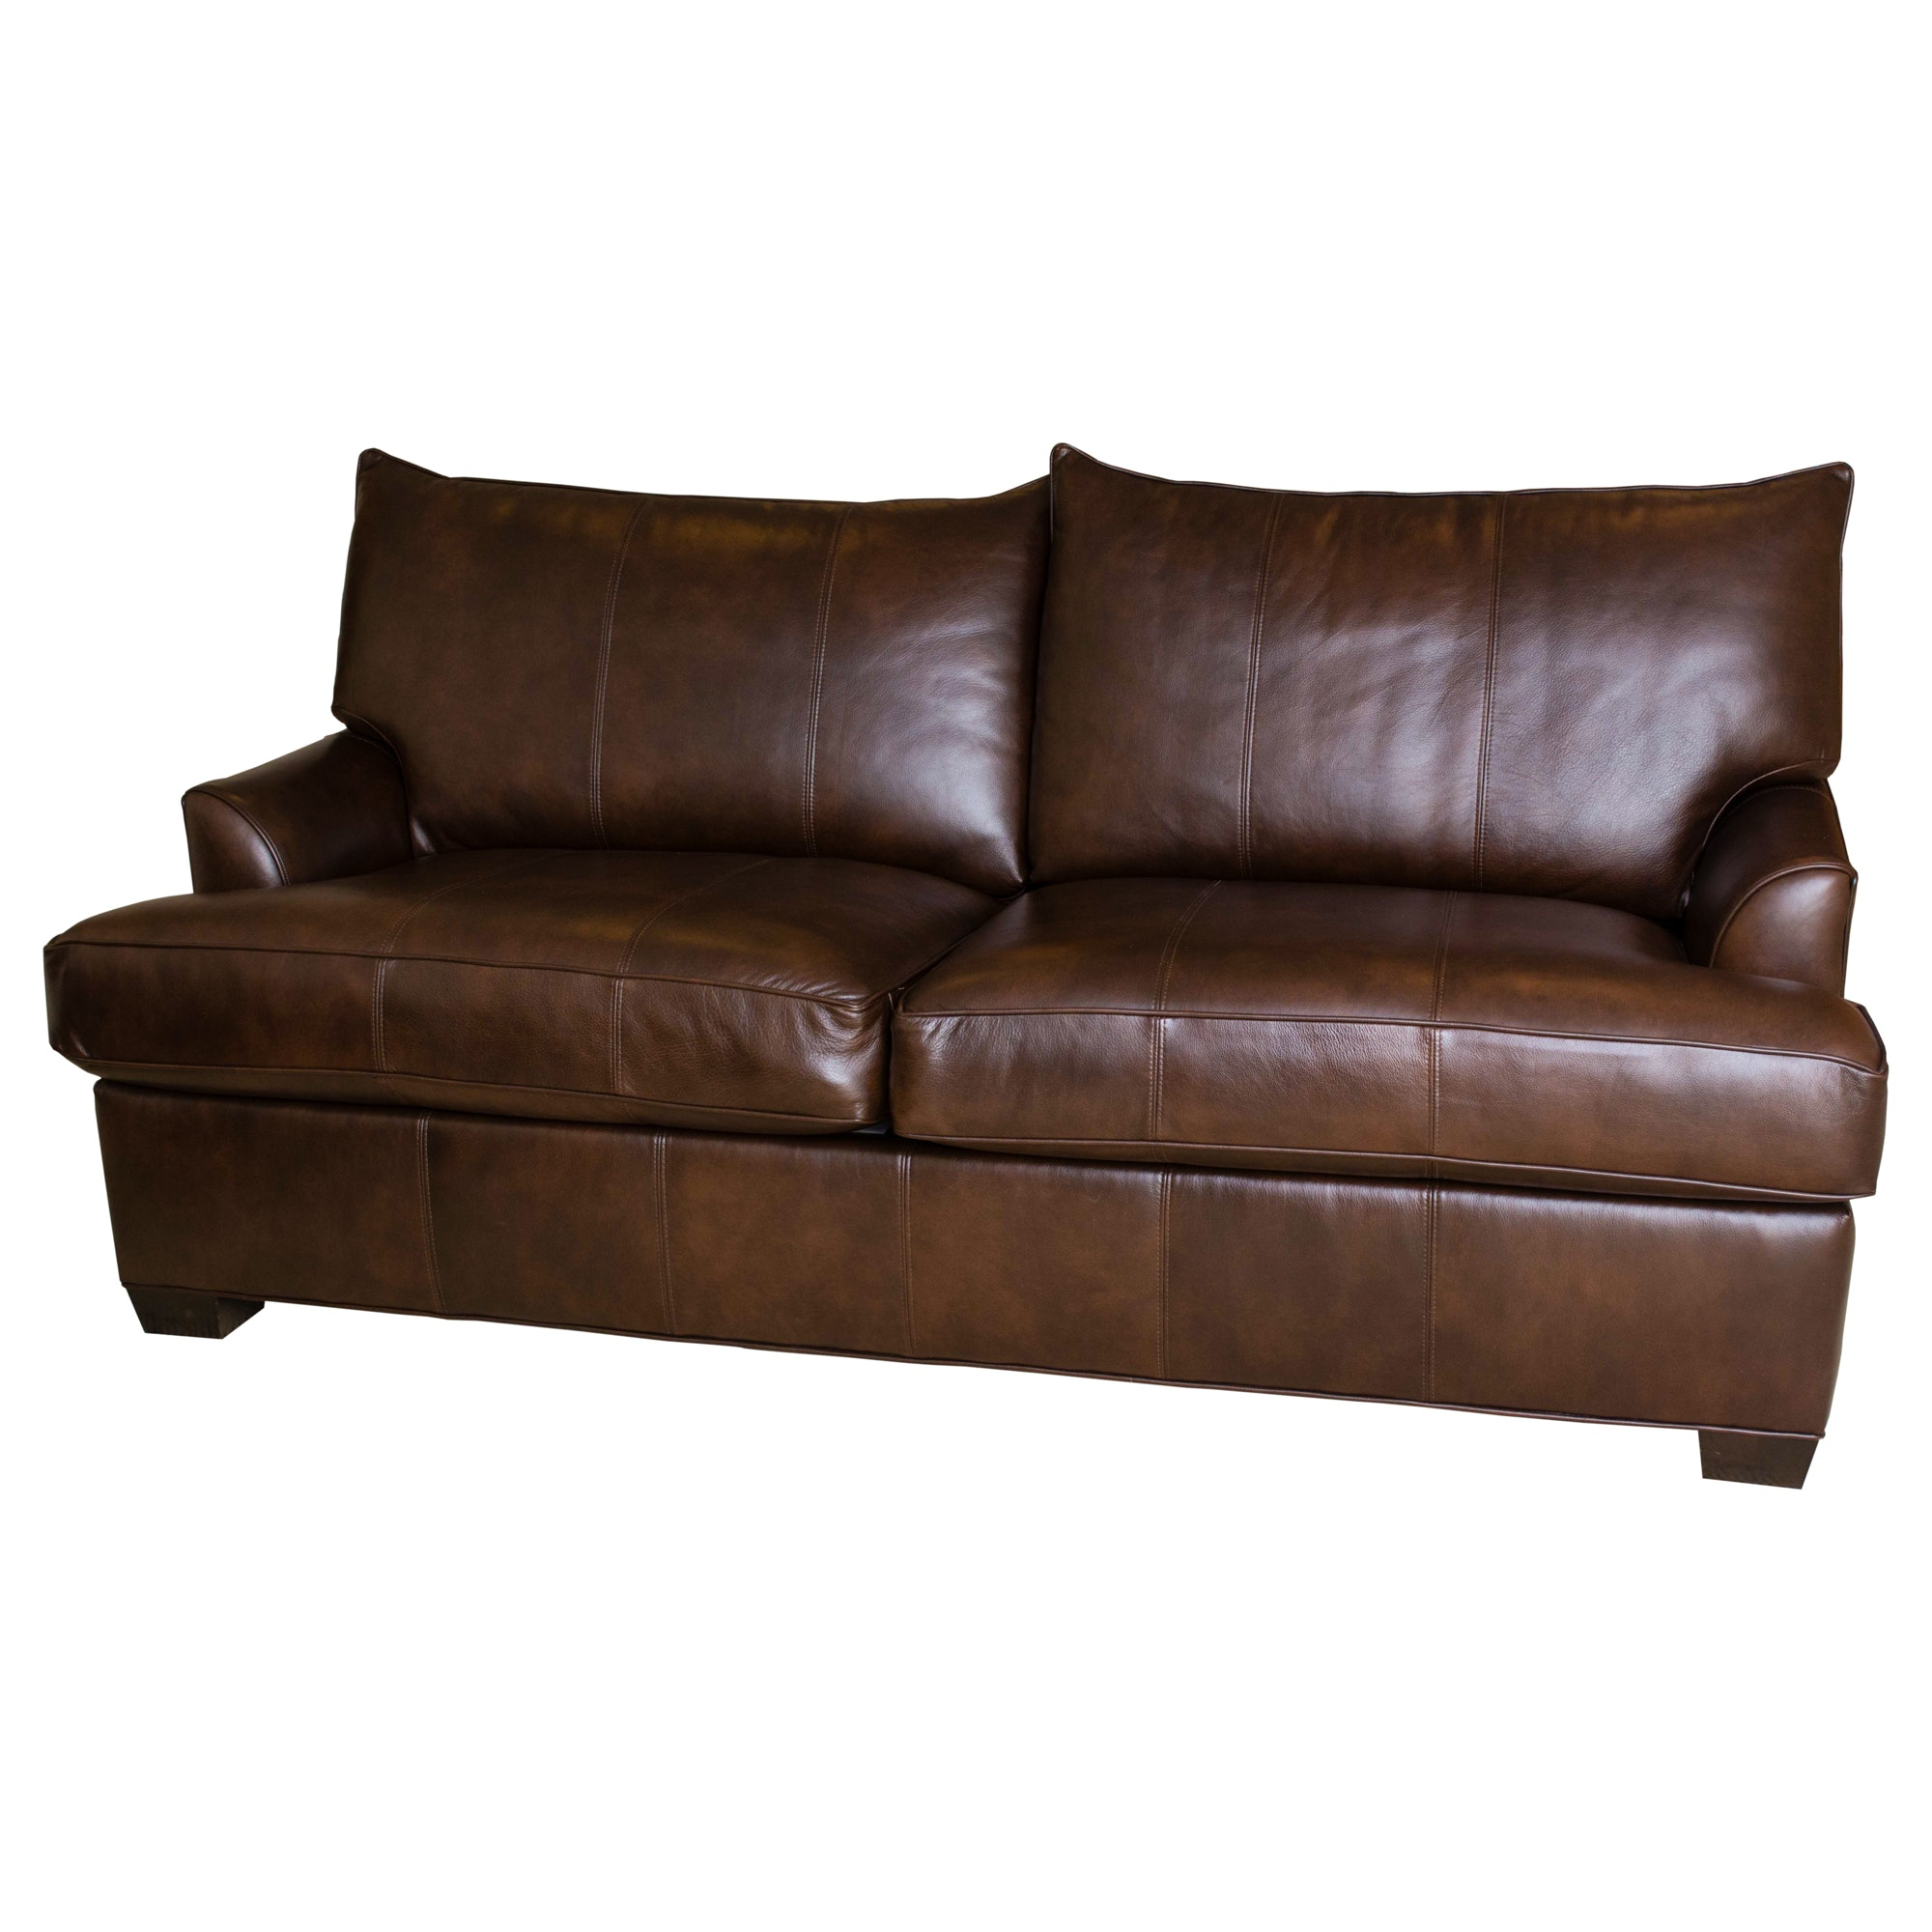 Ethan Allen Leather Sofa ...